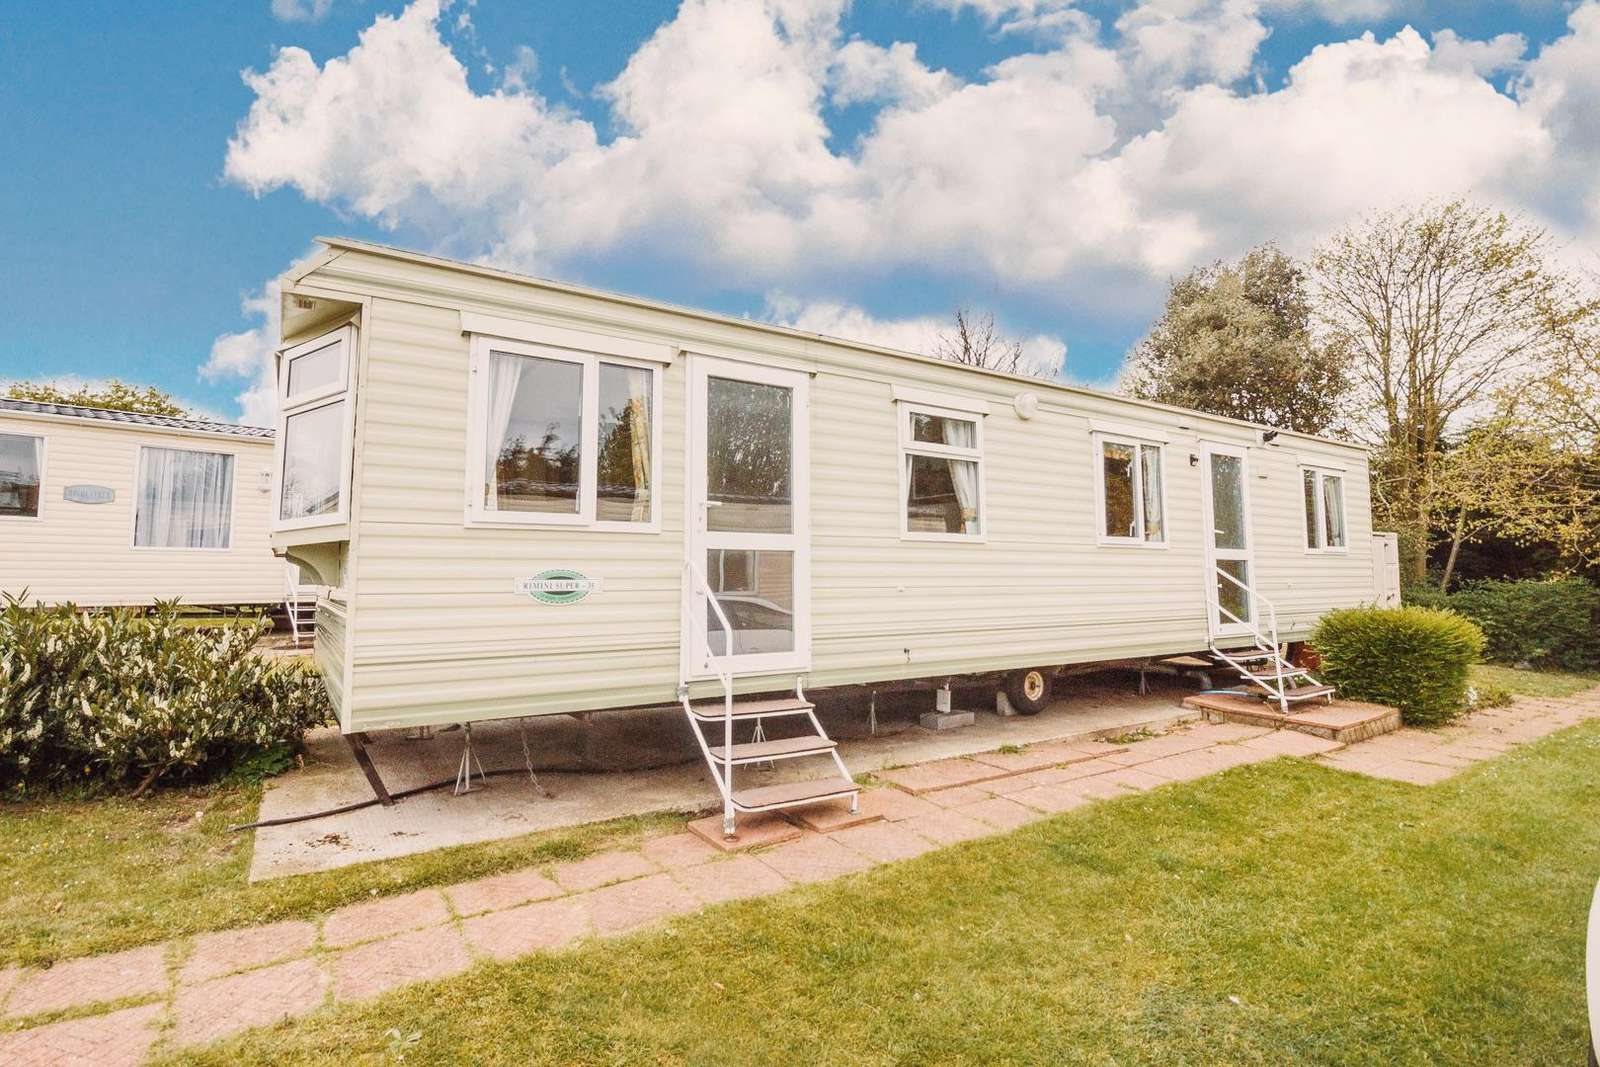 Caravan for hire in Norfolk near Great Yarmouth.